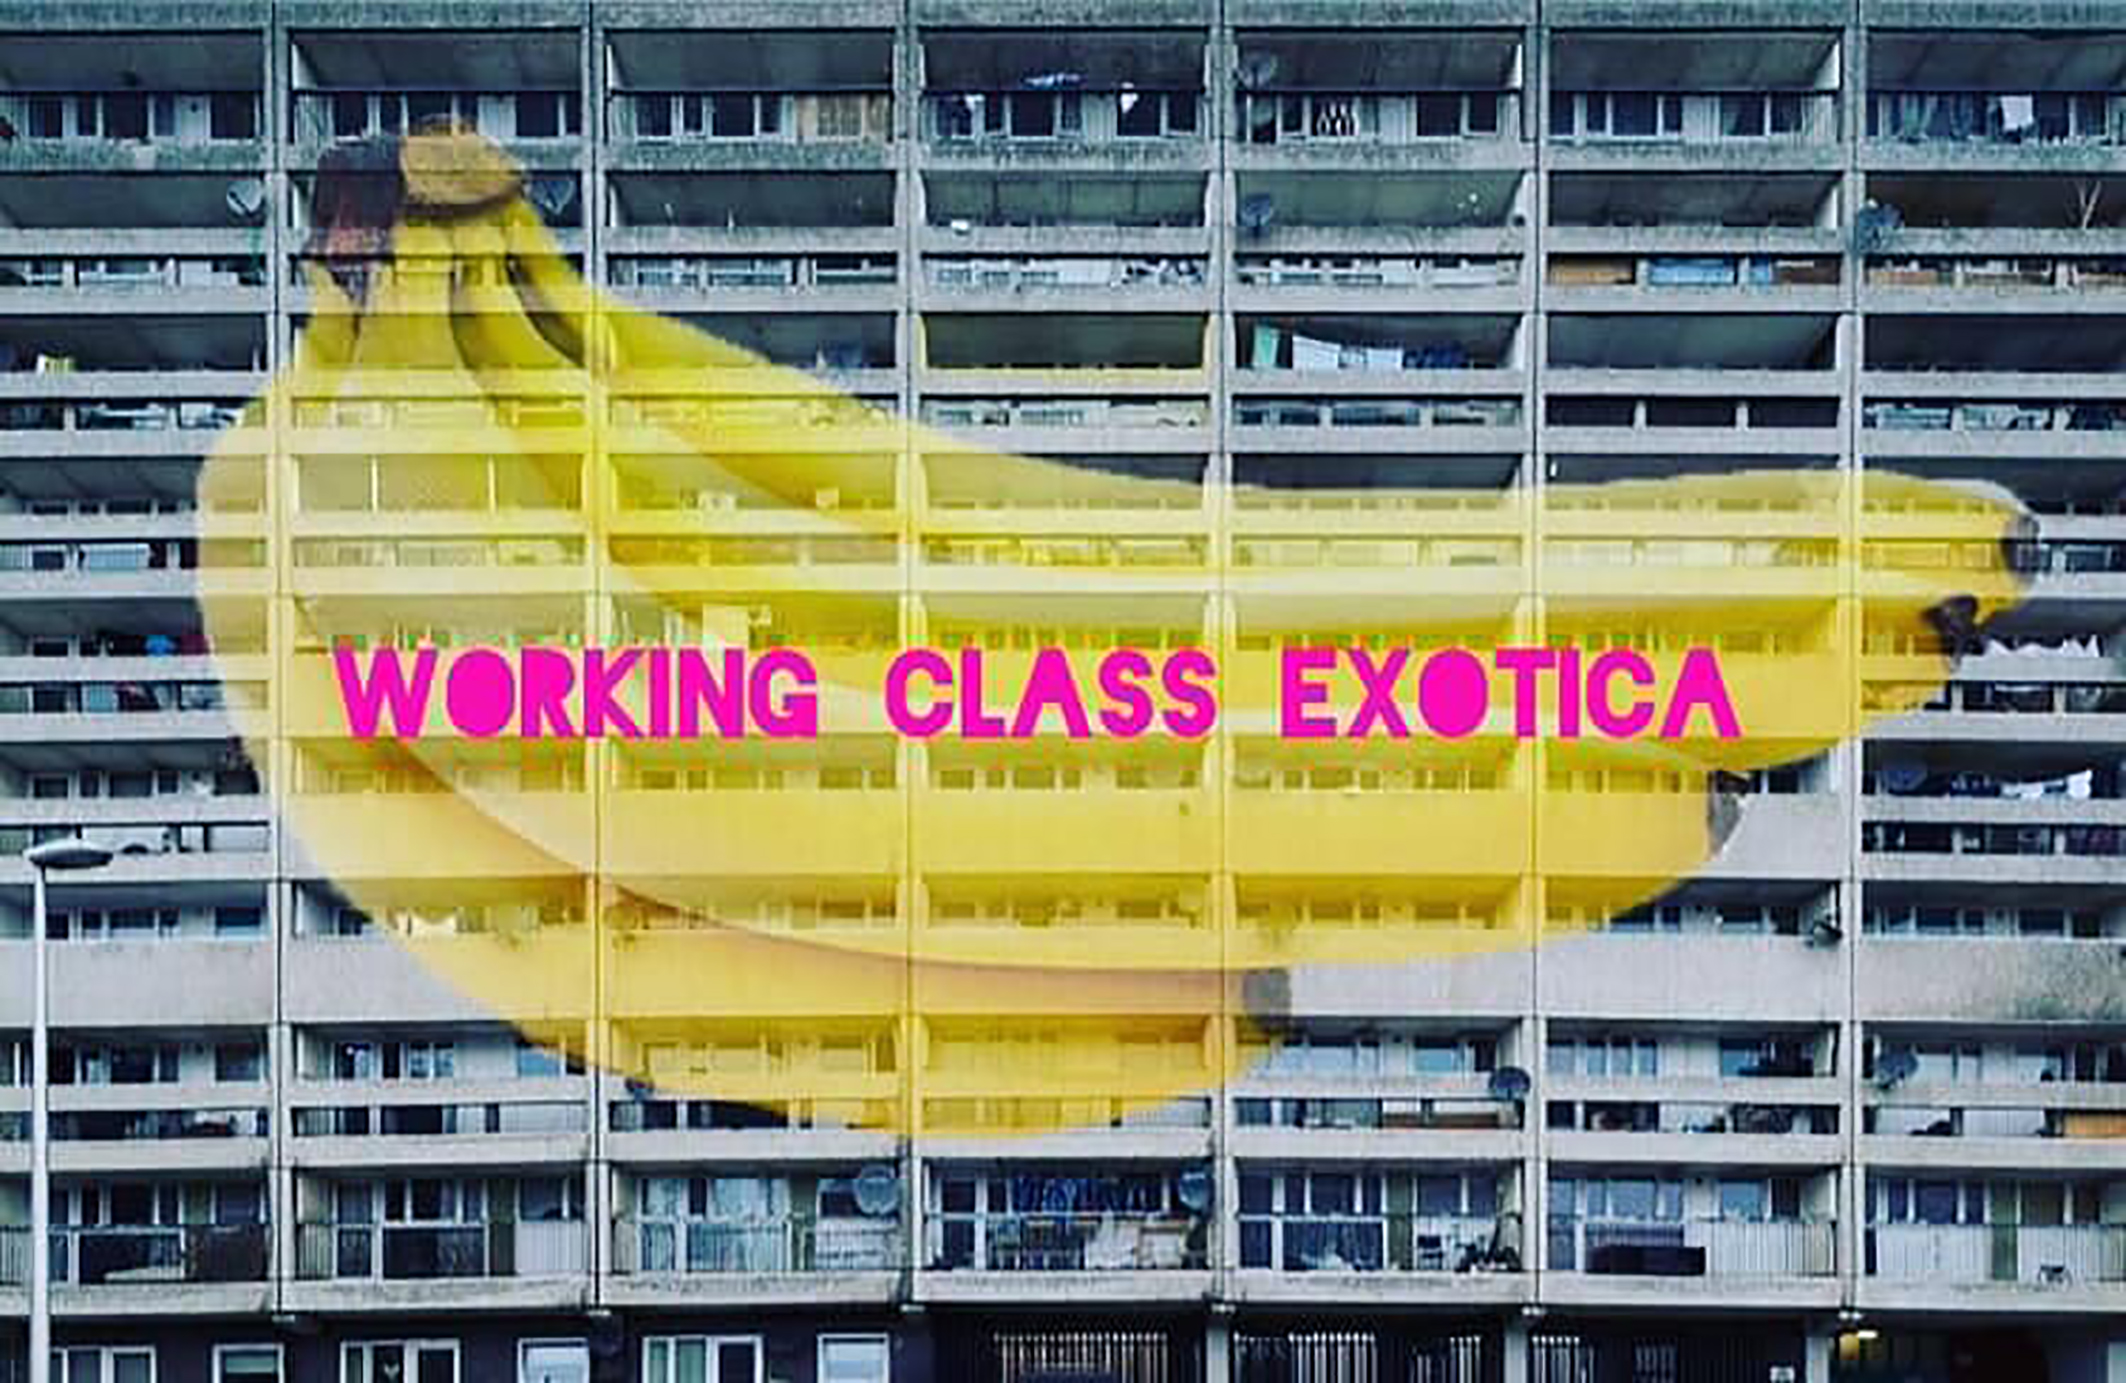 WorkingClassExotica_01_Credit Heather Marshall Creative Electric.jpg